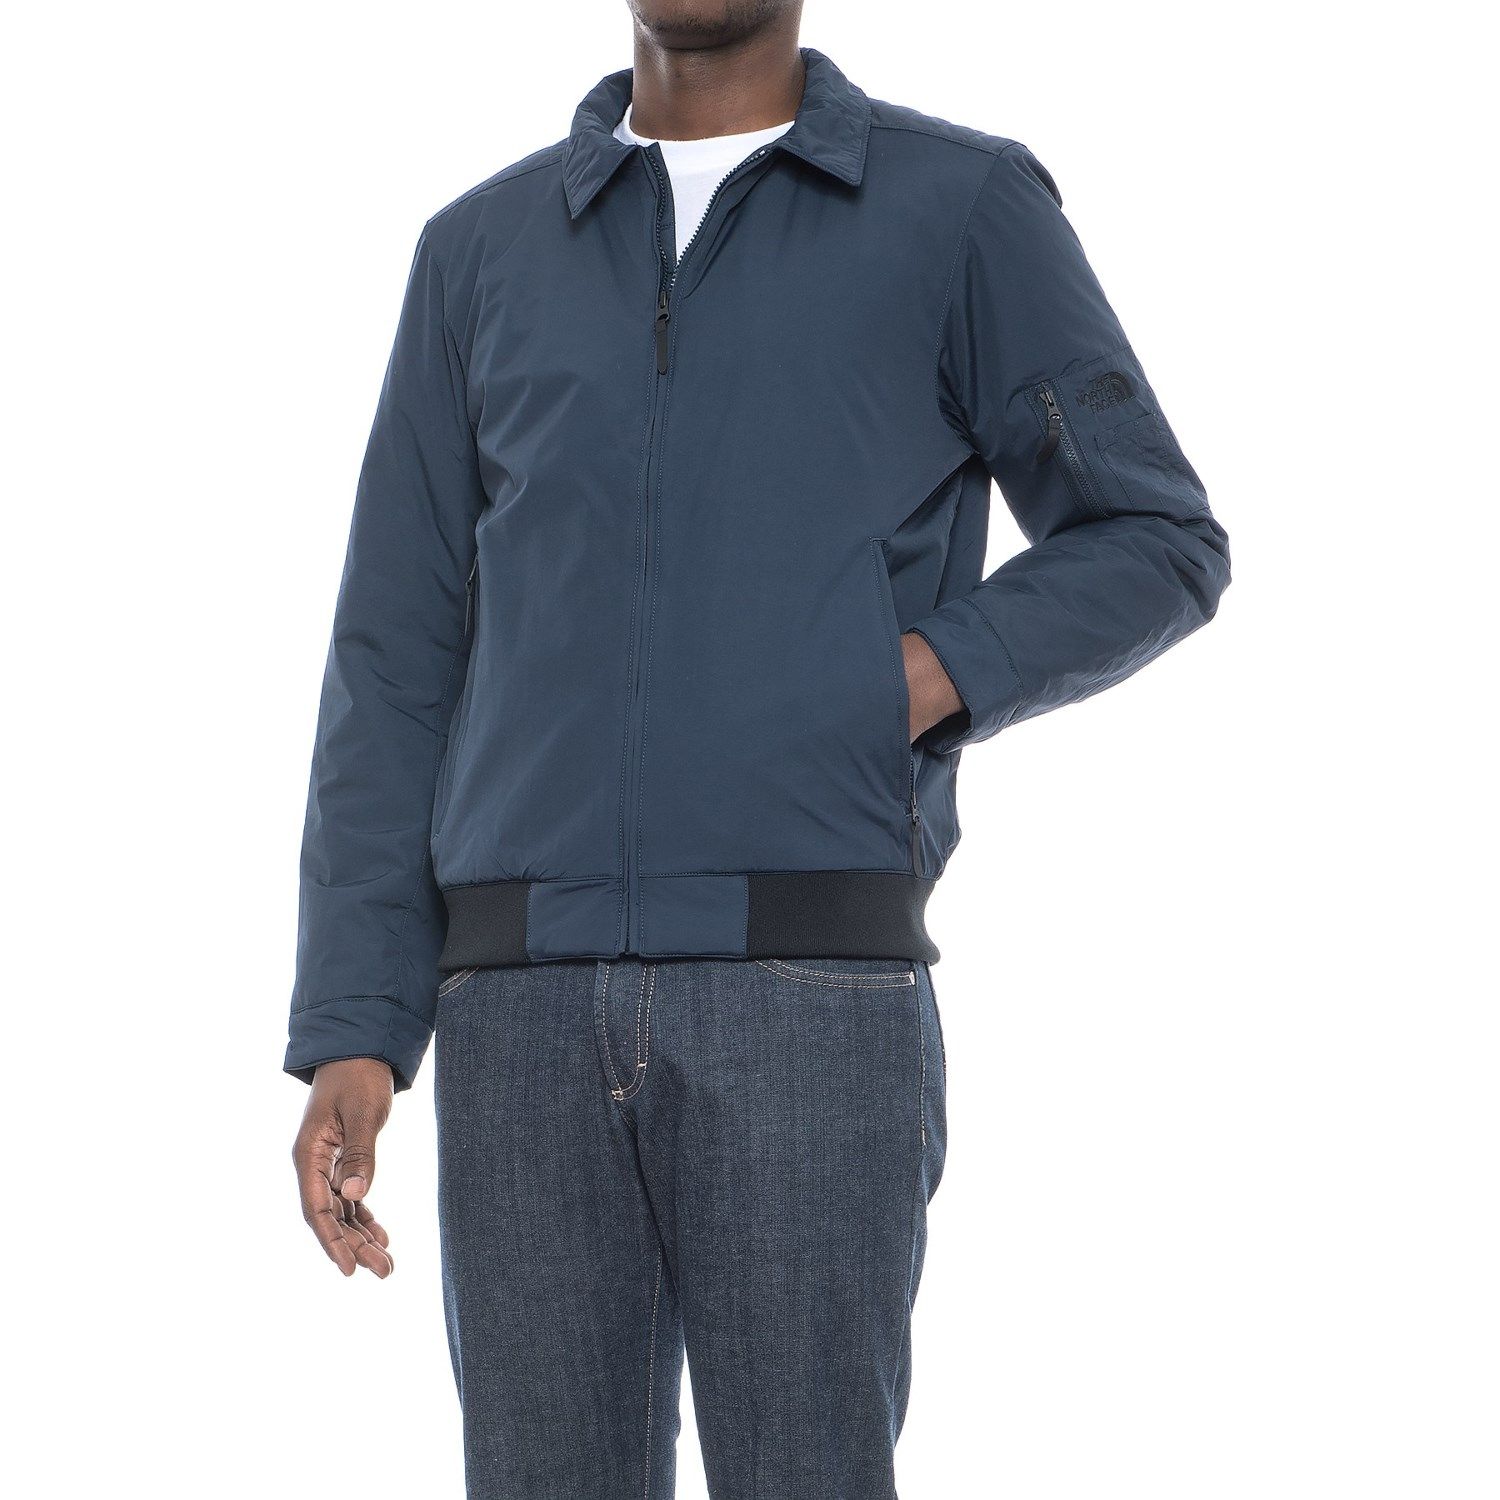 d7e5f7714 The North Face Barstol Aviator Jacket - Insulated (For Men ...